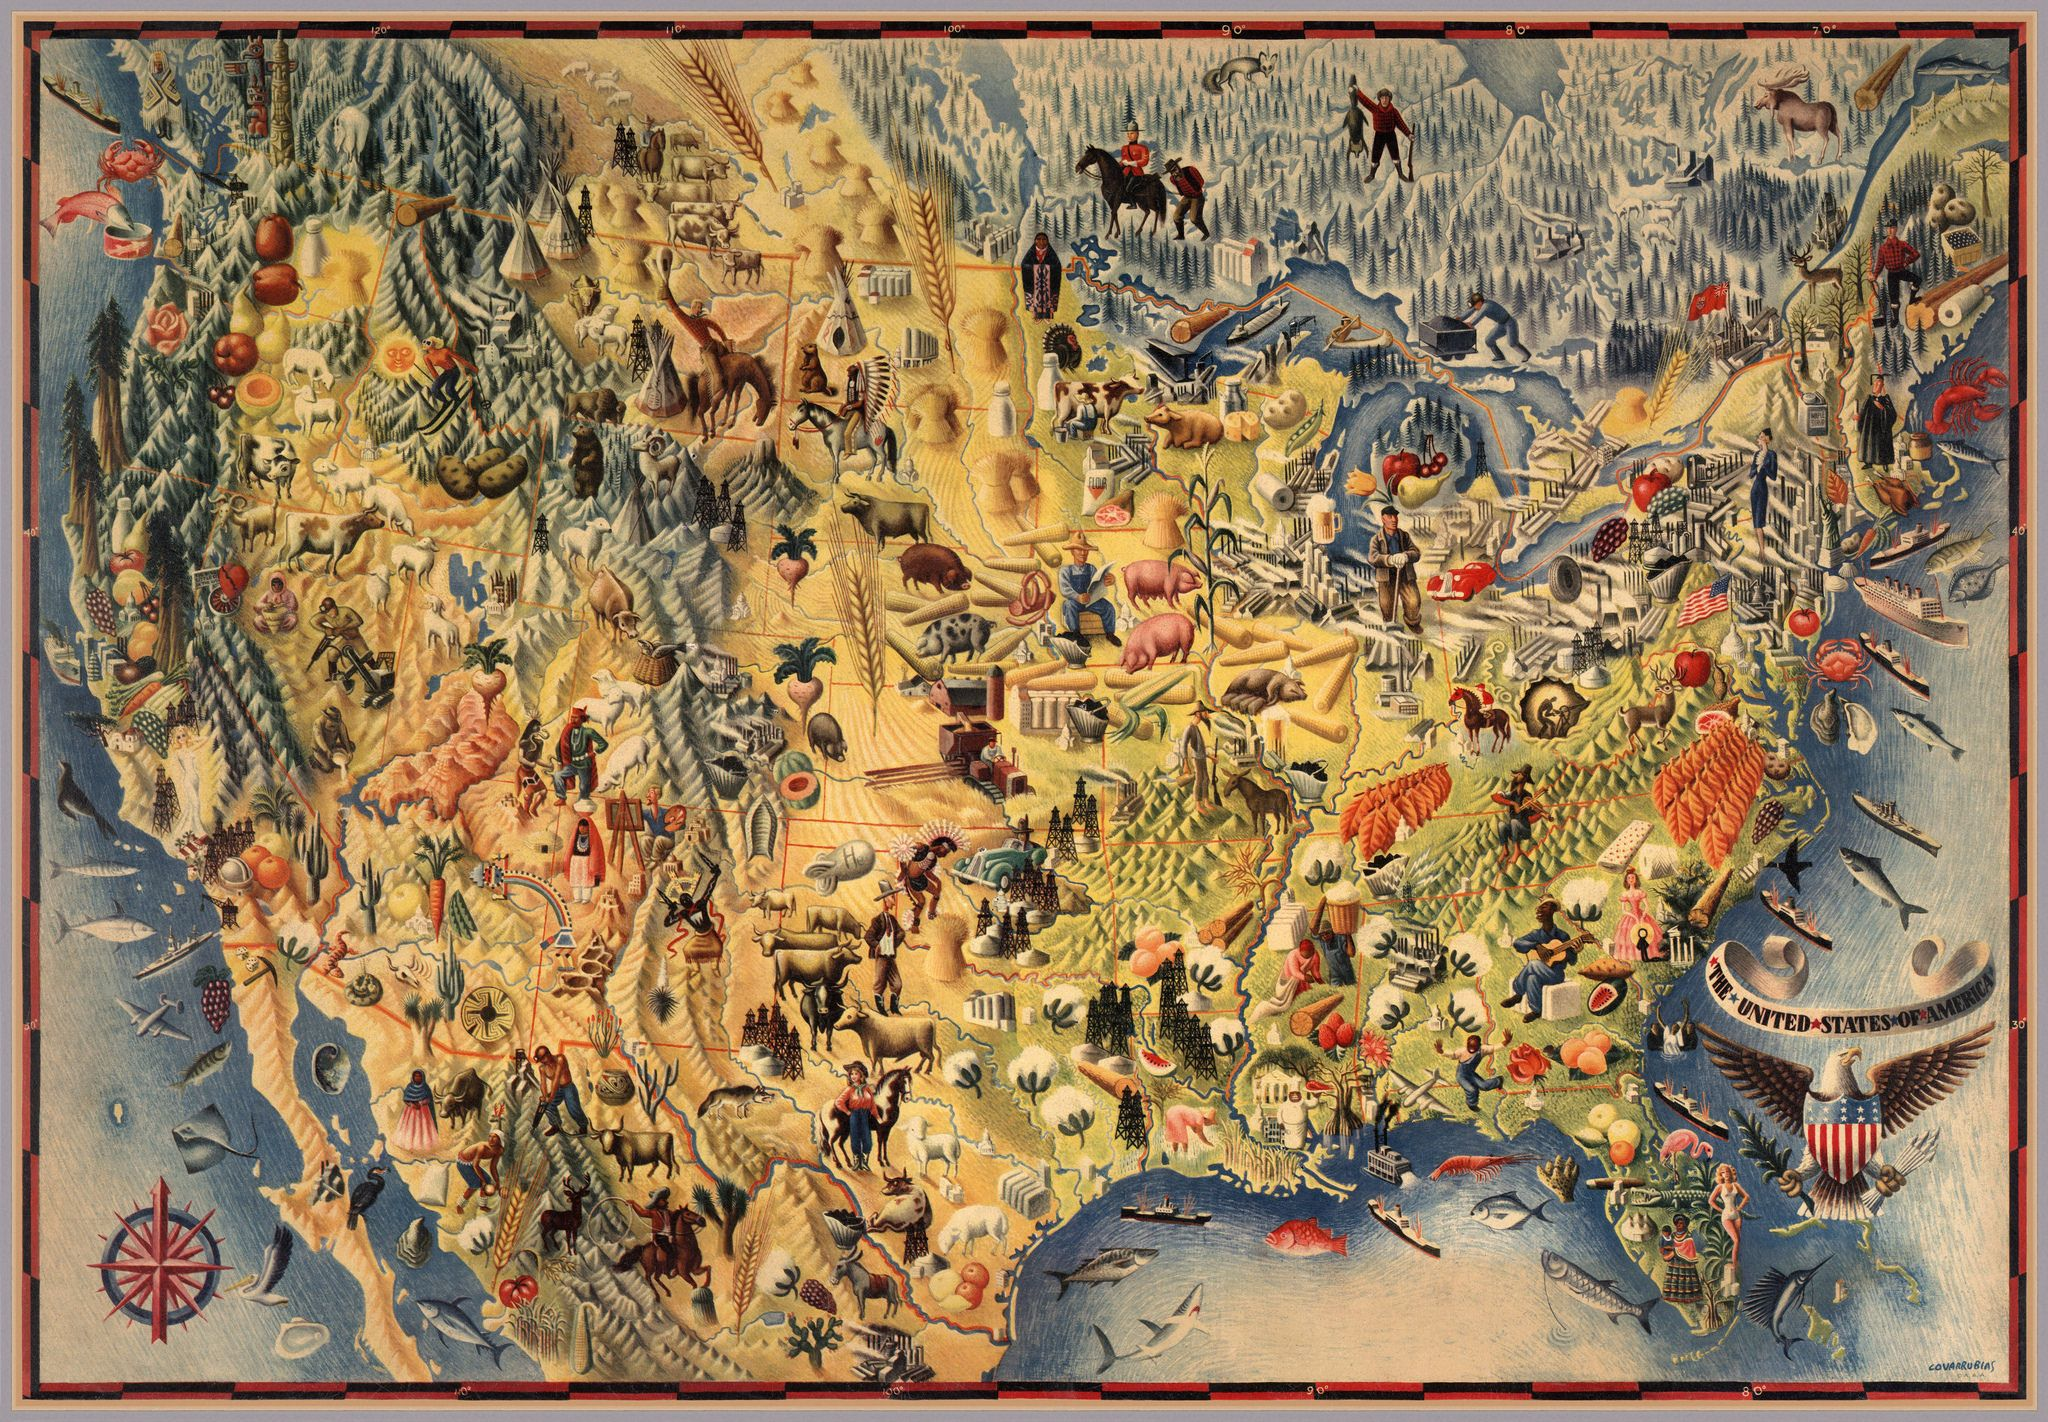 USPictorialMap Pictorial maps